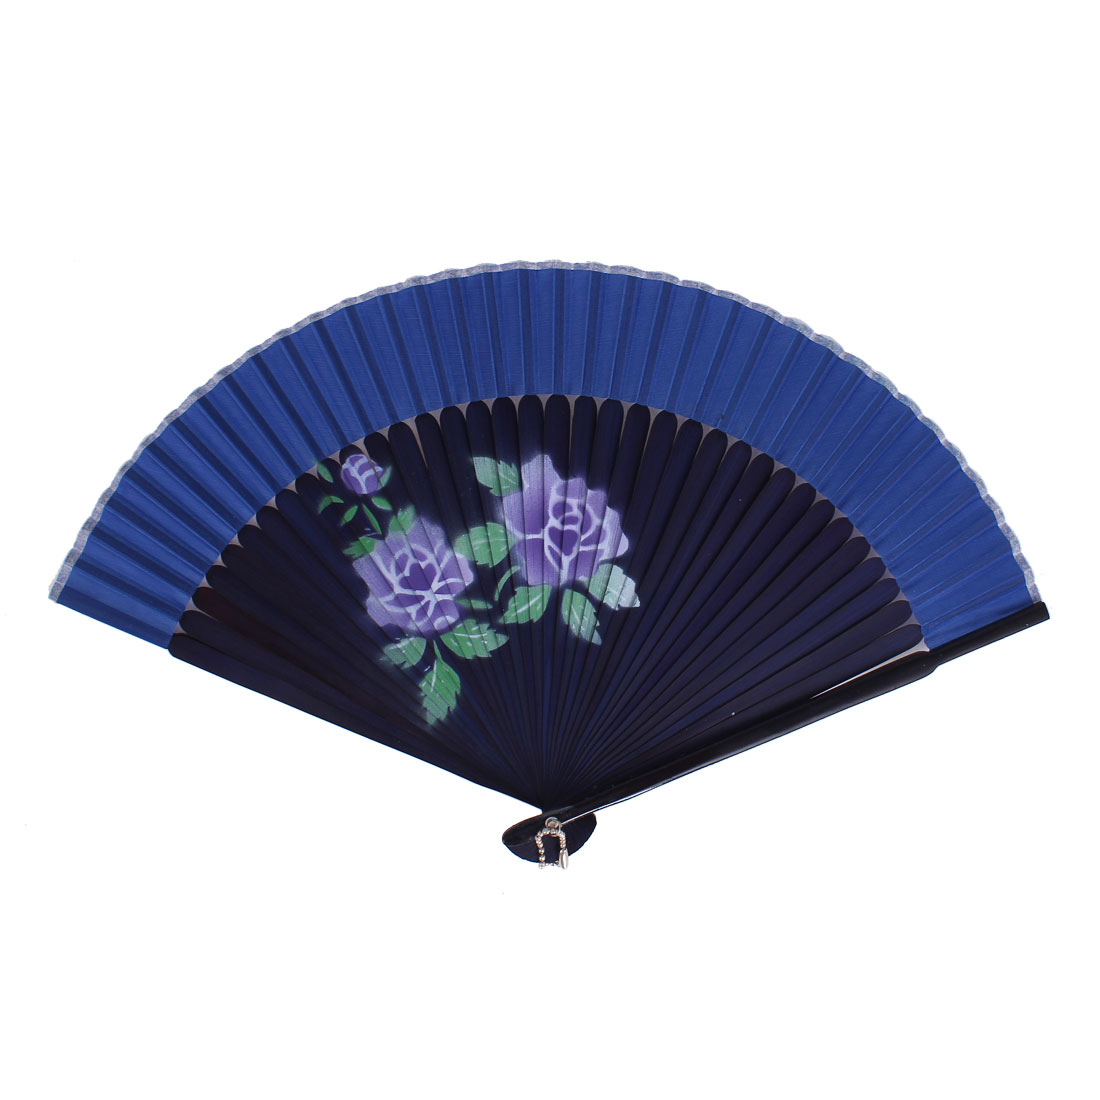 Chinese Style Blooming Flower Print Wood Handheld Folding Hand Fan Blue